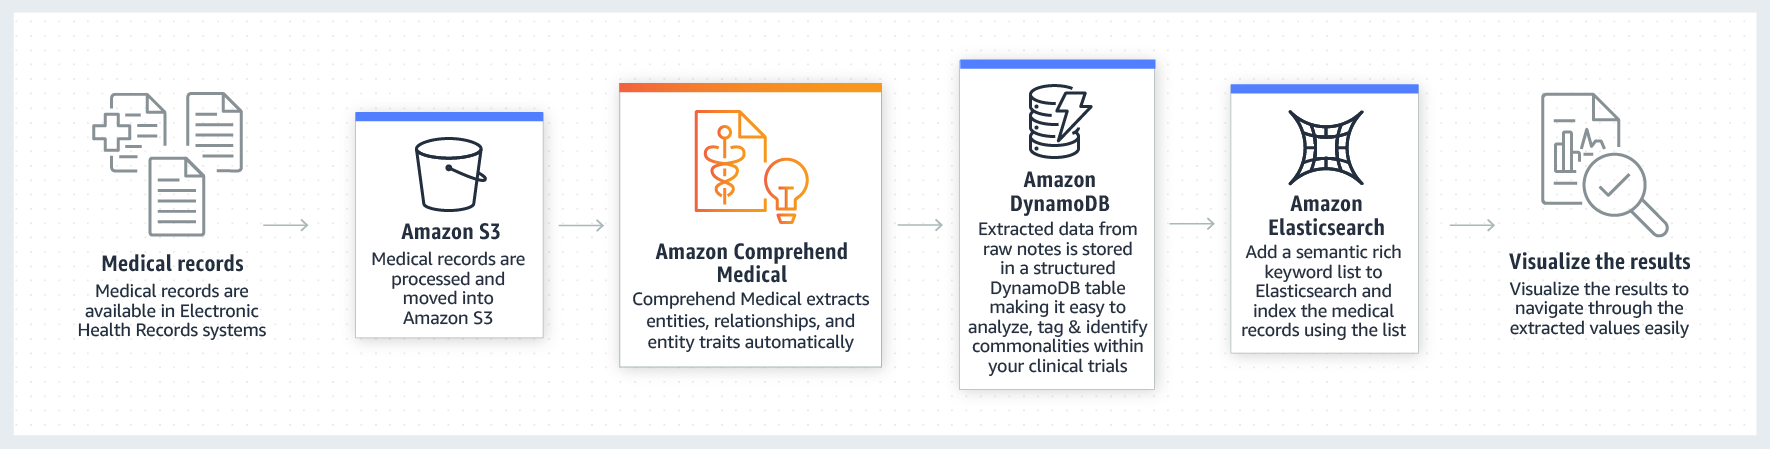 product-page-diagram-AWS-Hera-Launch_Clinical-Trial-Recruitment@1.5x